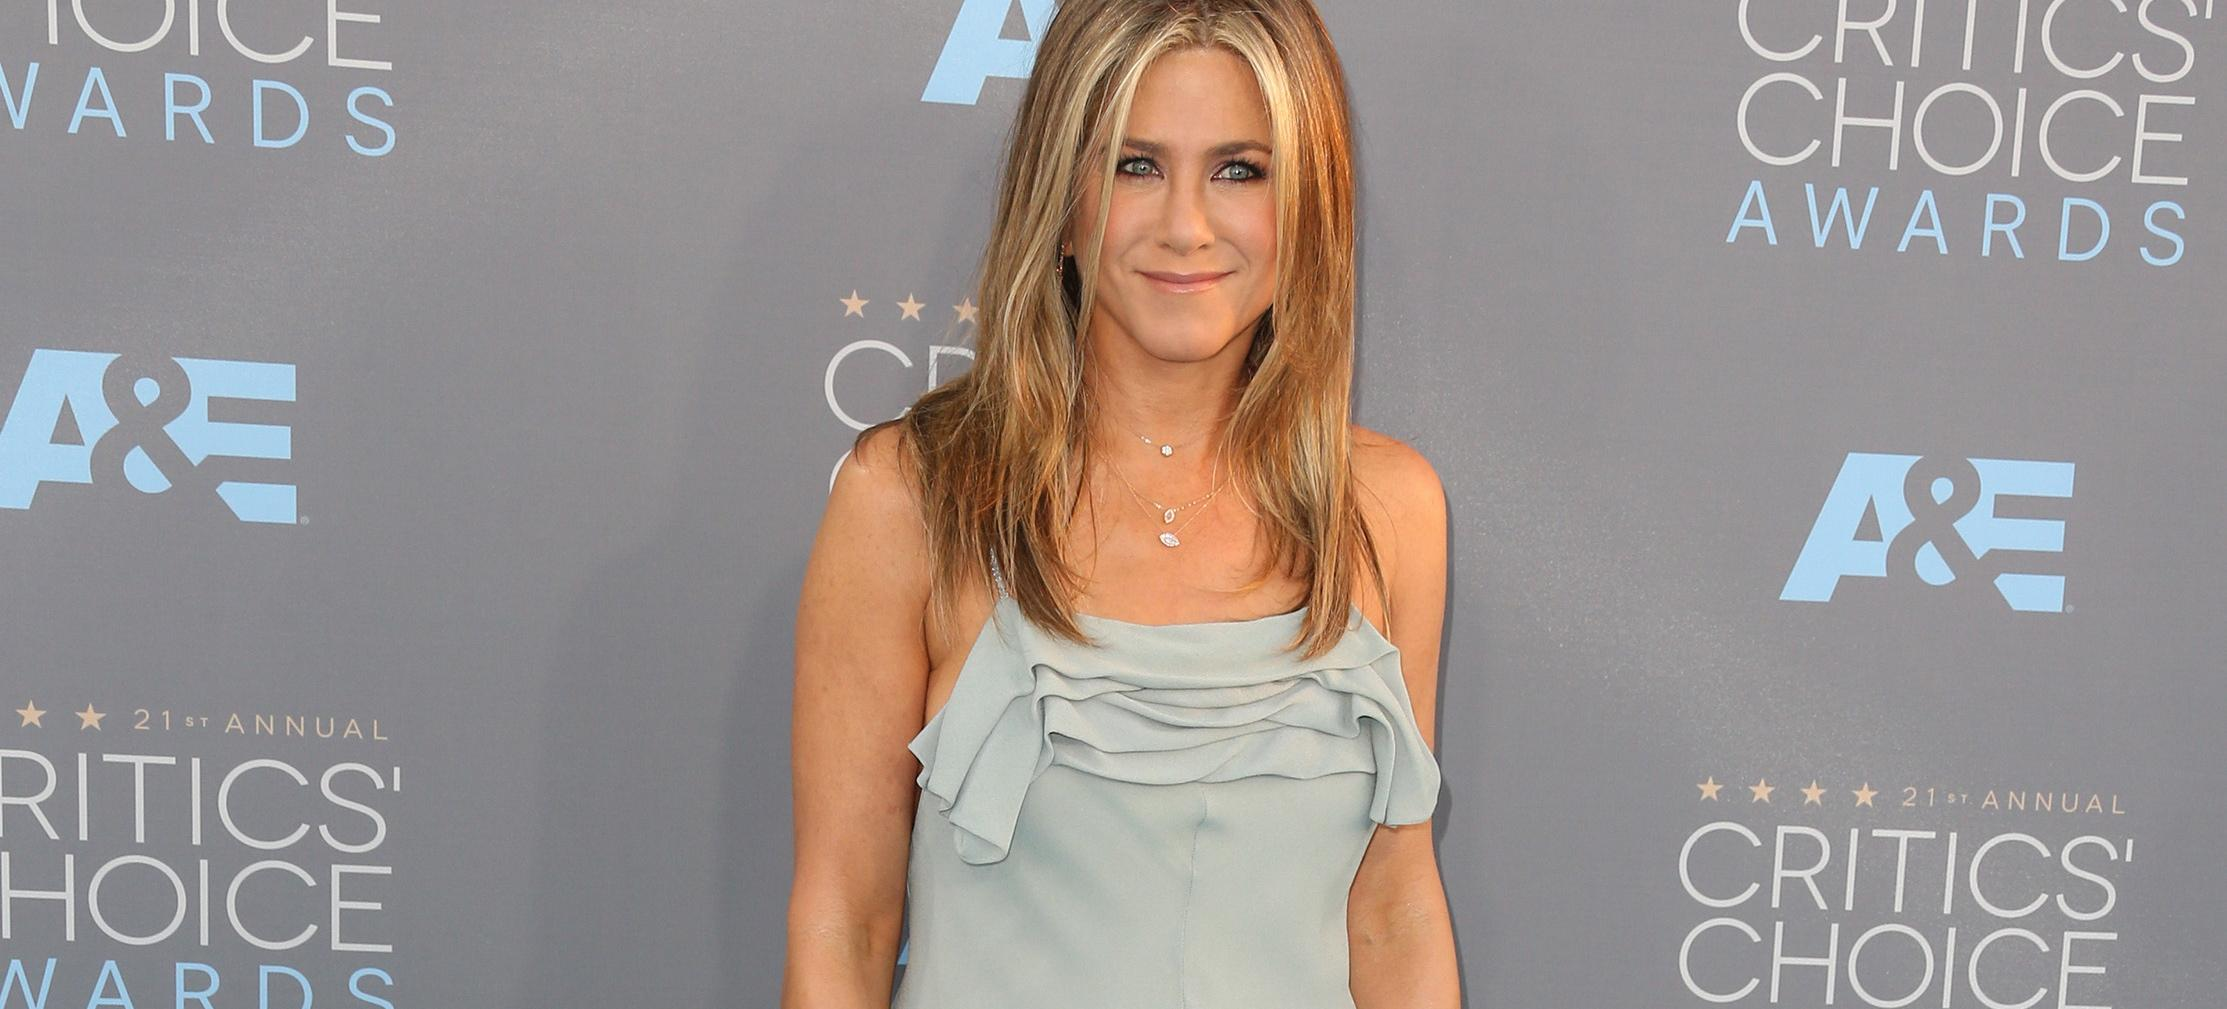 Jennifer Aniston Talks Food: Breakfast Favorites, Bulletproof Coffee, And More